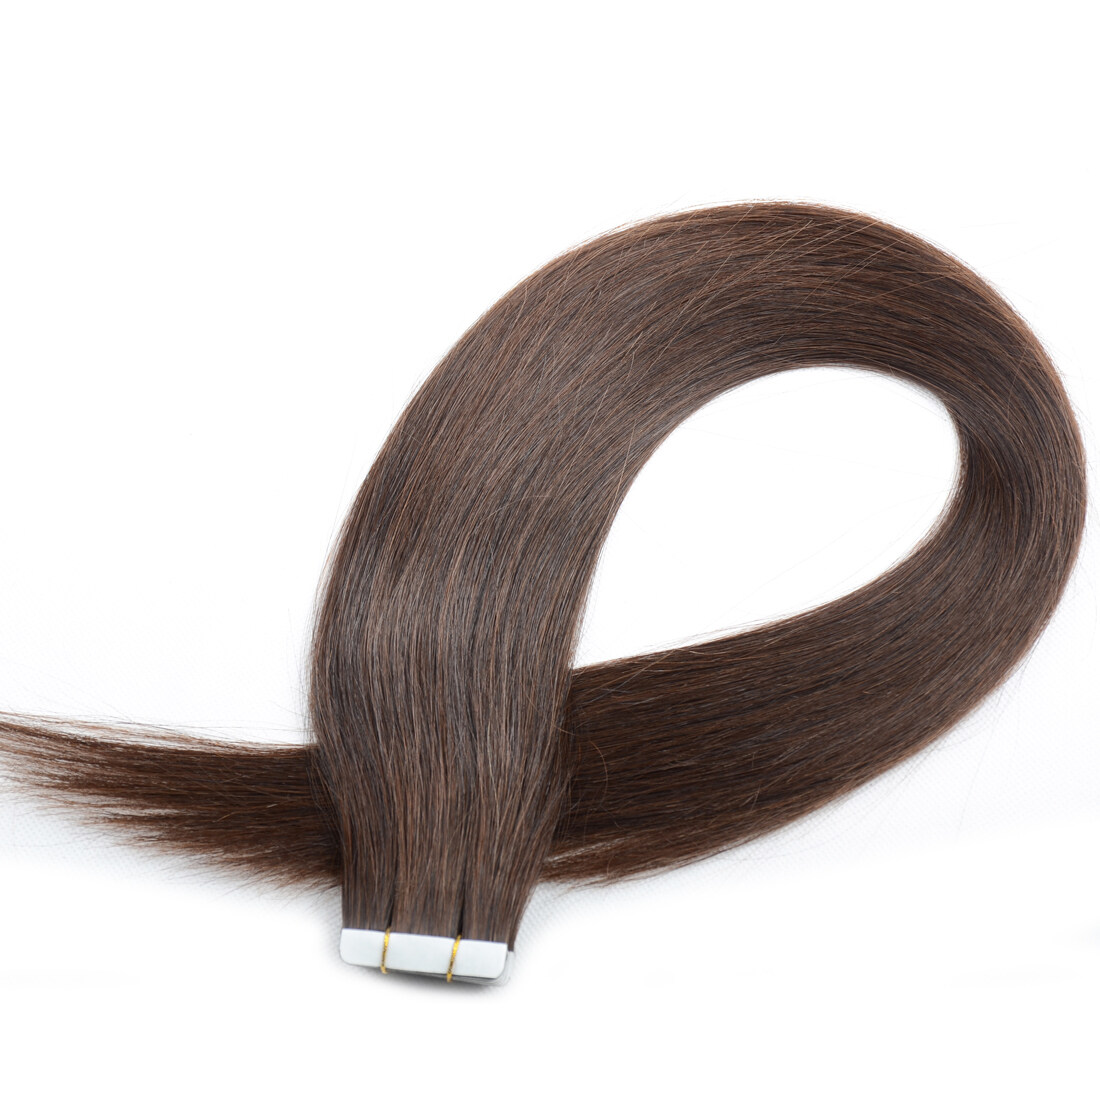 Online Shopping For Tape Hair Extensionsweft Hair Extensionsi Tip